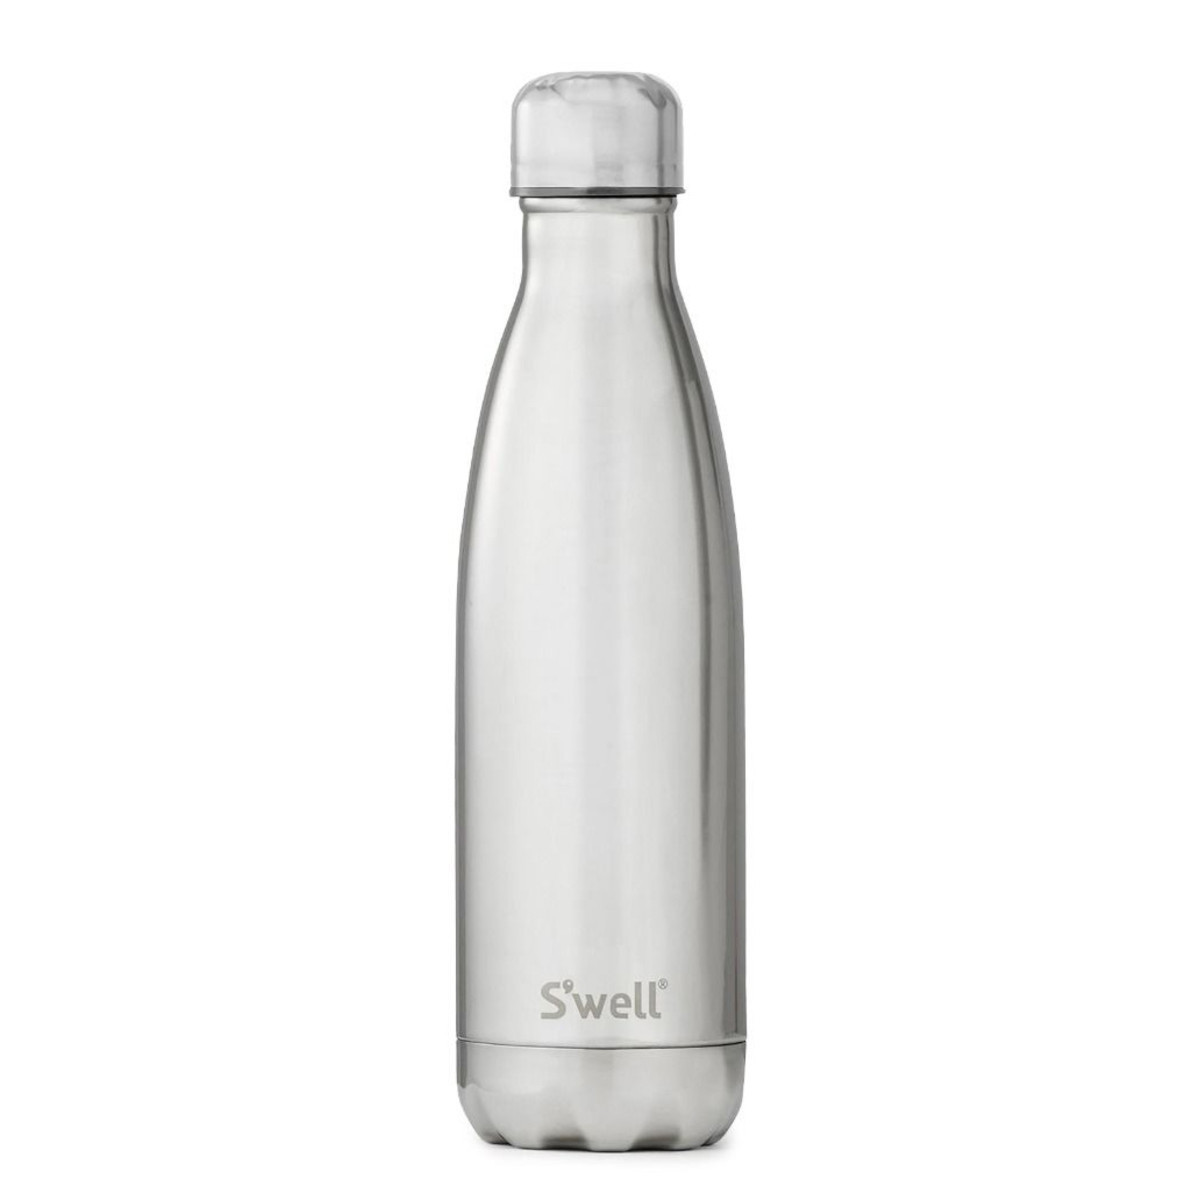 S'well Insulated Bottle - White Gold (500ml) image